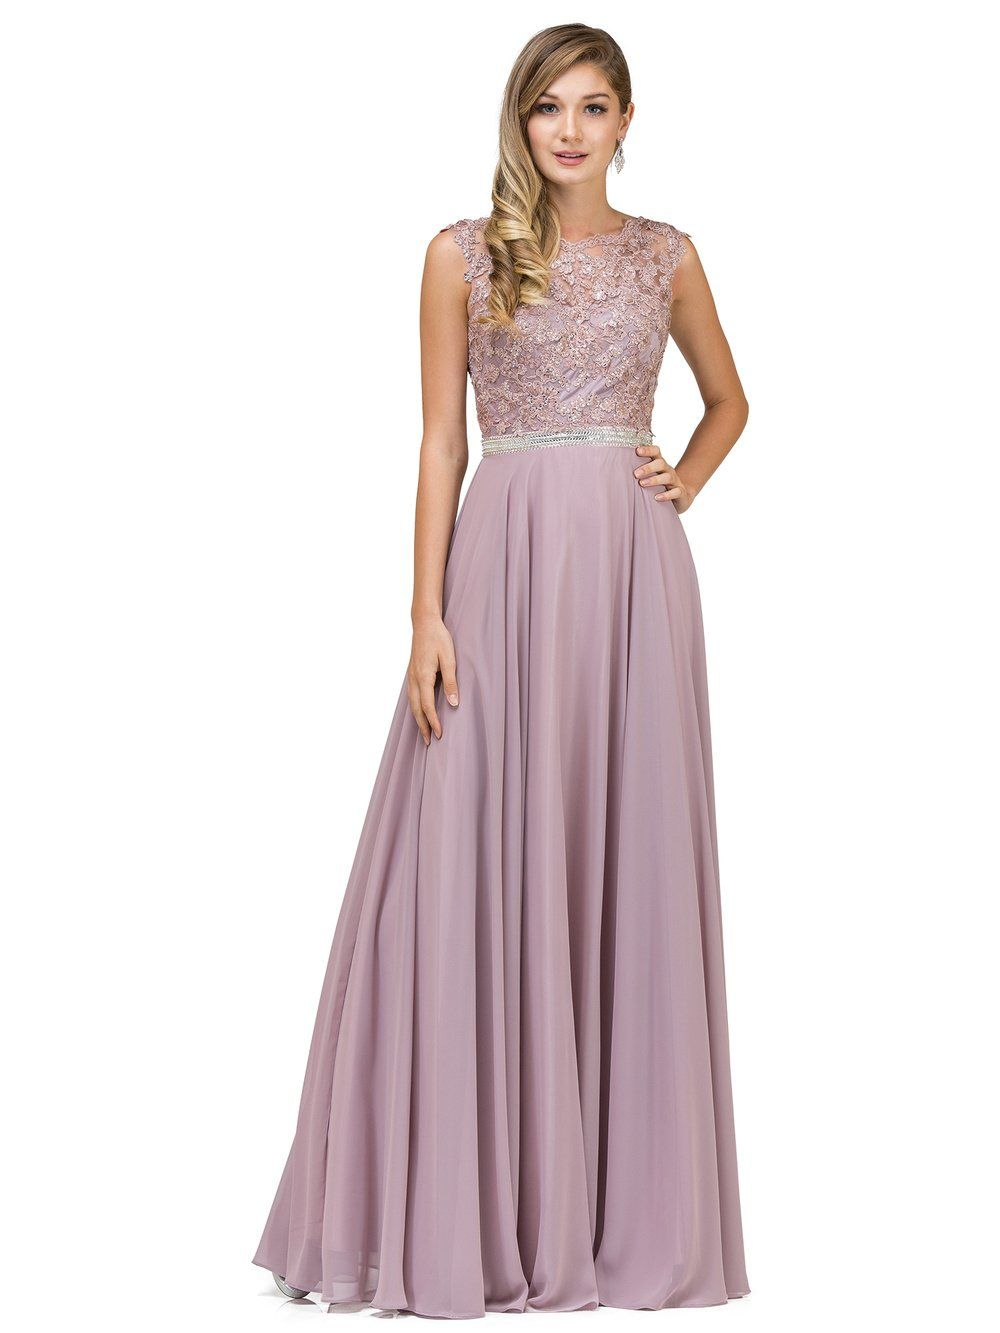 e50b37a2732 Dancing Queen DQ 9675 - Pastel Prom Dress with Illusion-Lace Bodice    Chiffon Skirt - Diggz Prom